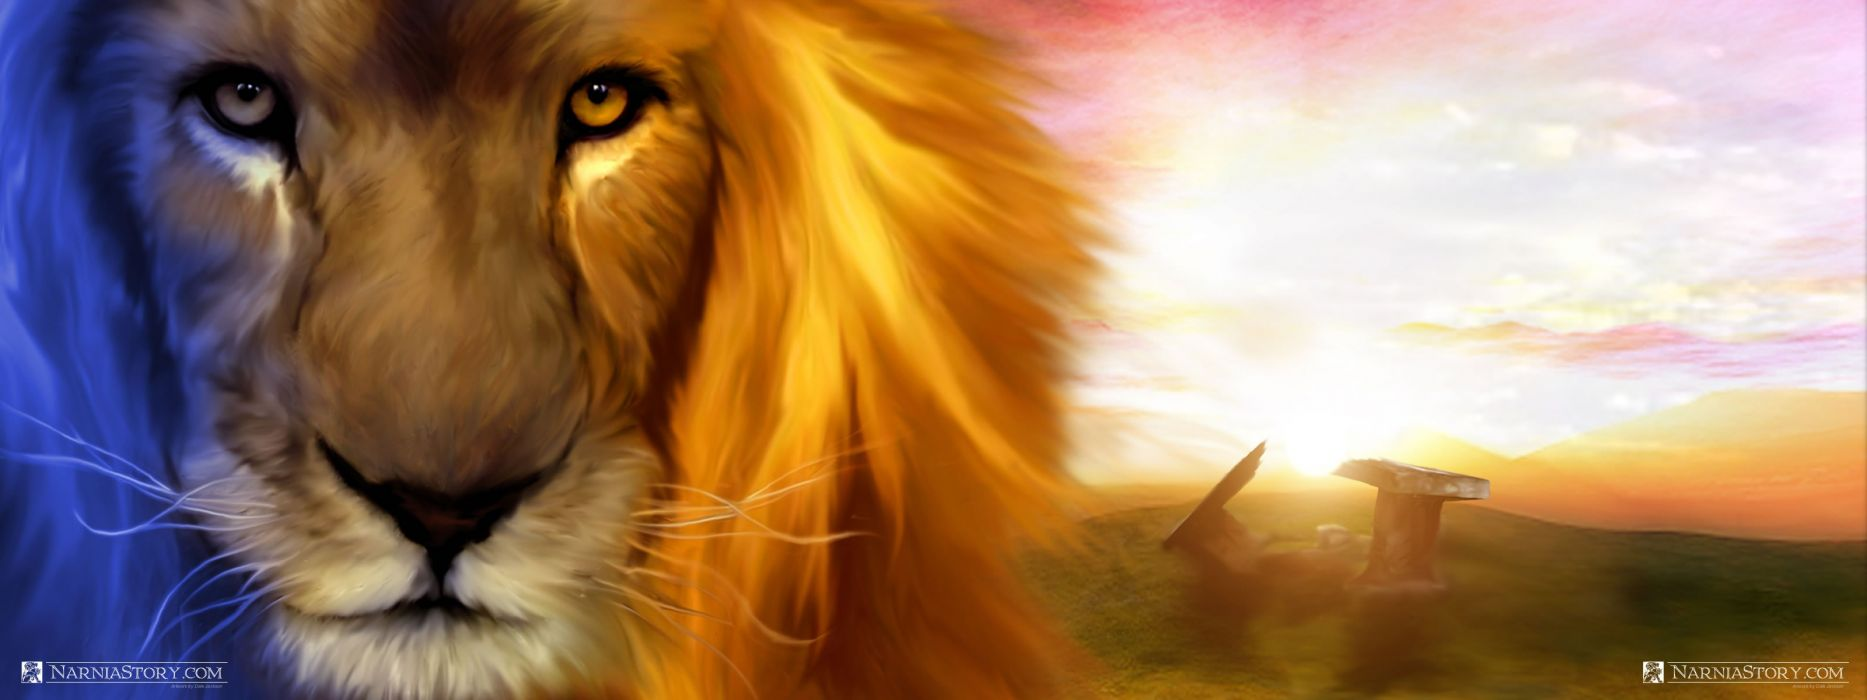 NARNIA adventure fantasy family series book 1narnia chronicles disney lion wallpaper